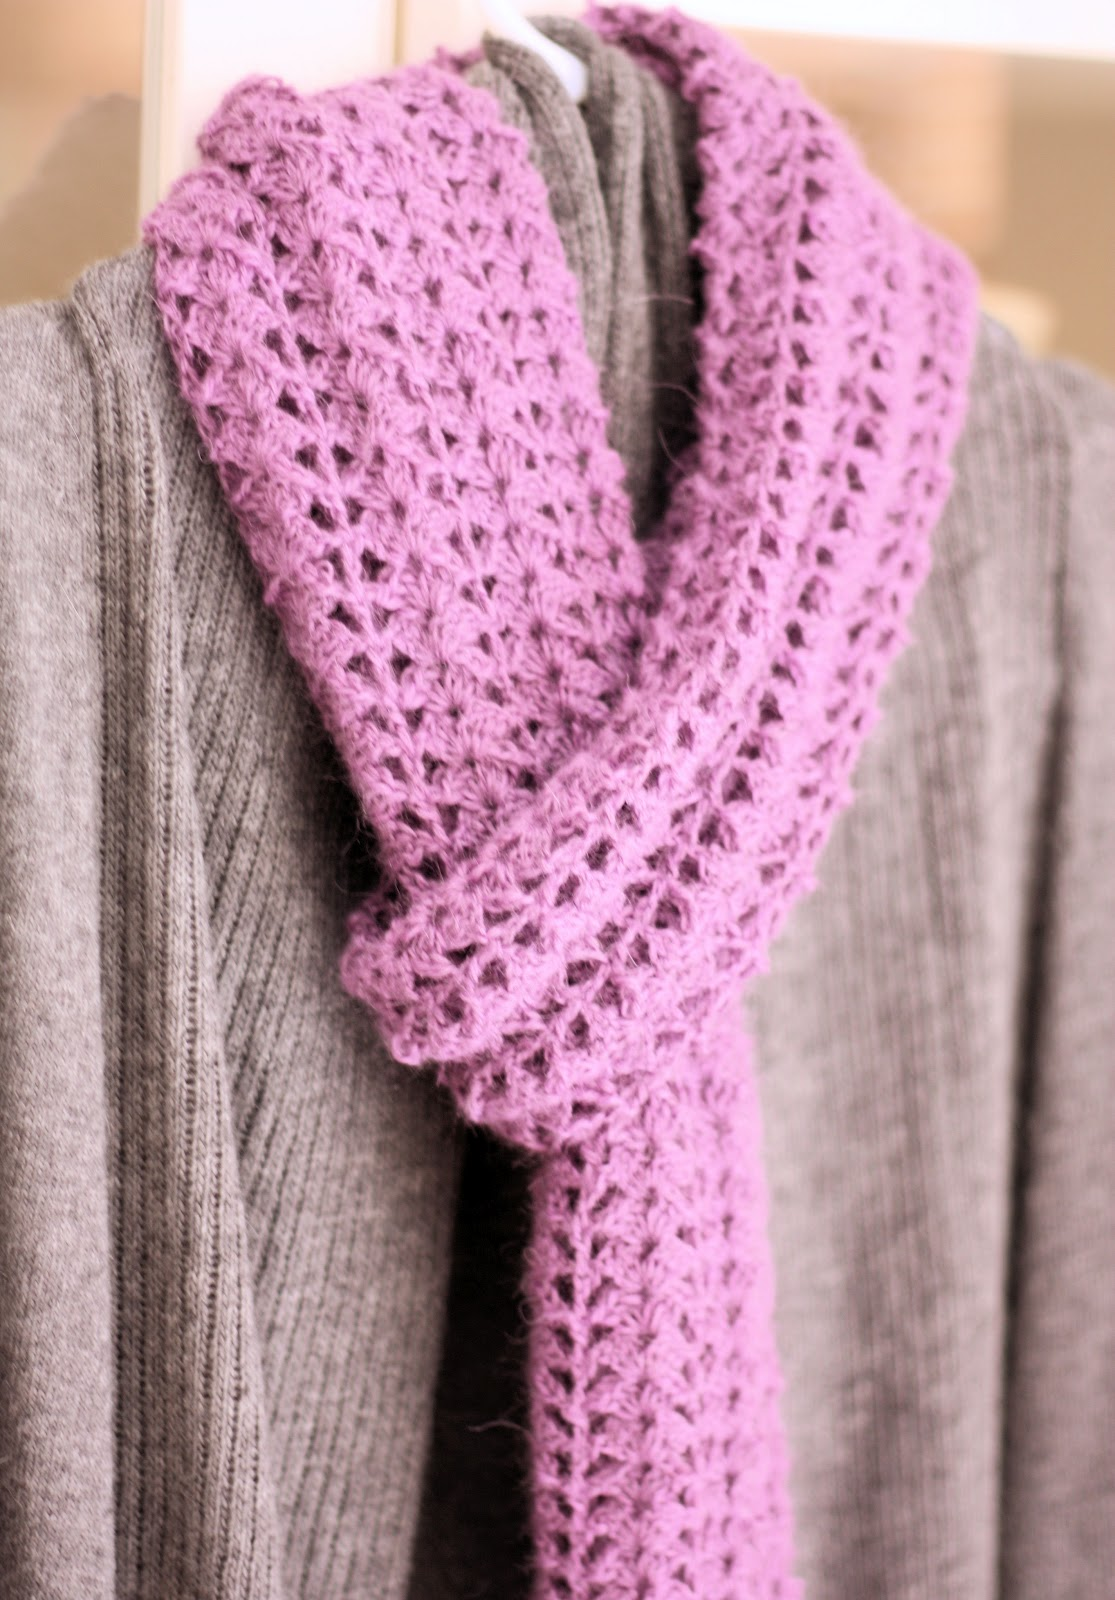 Crochet Patterns Easy Free Beginners : Crocheted Scarf {Free Pattern} - A Spoonful of Sugar